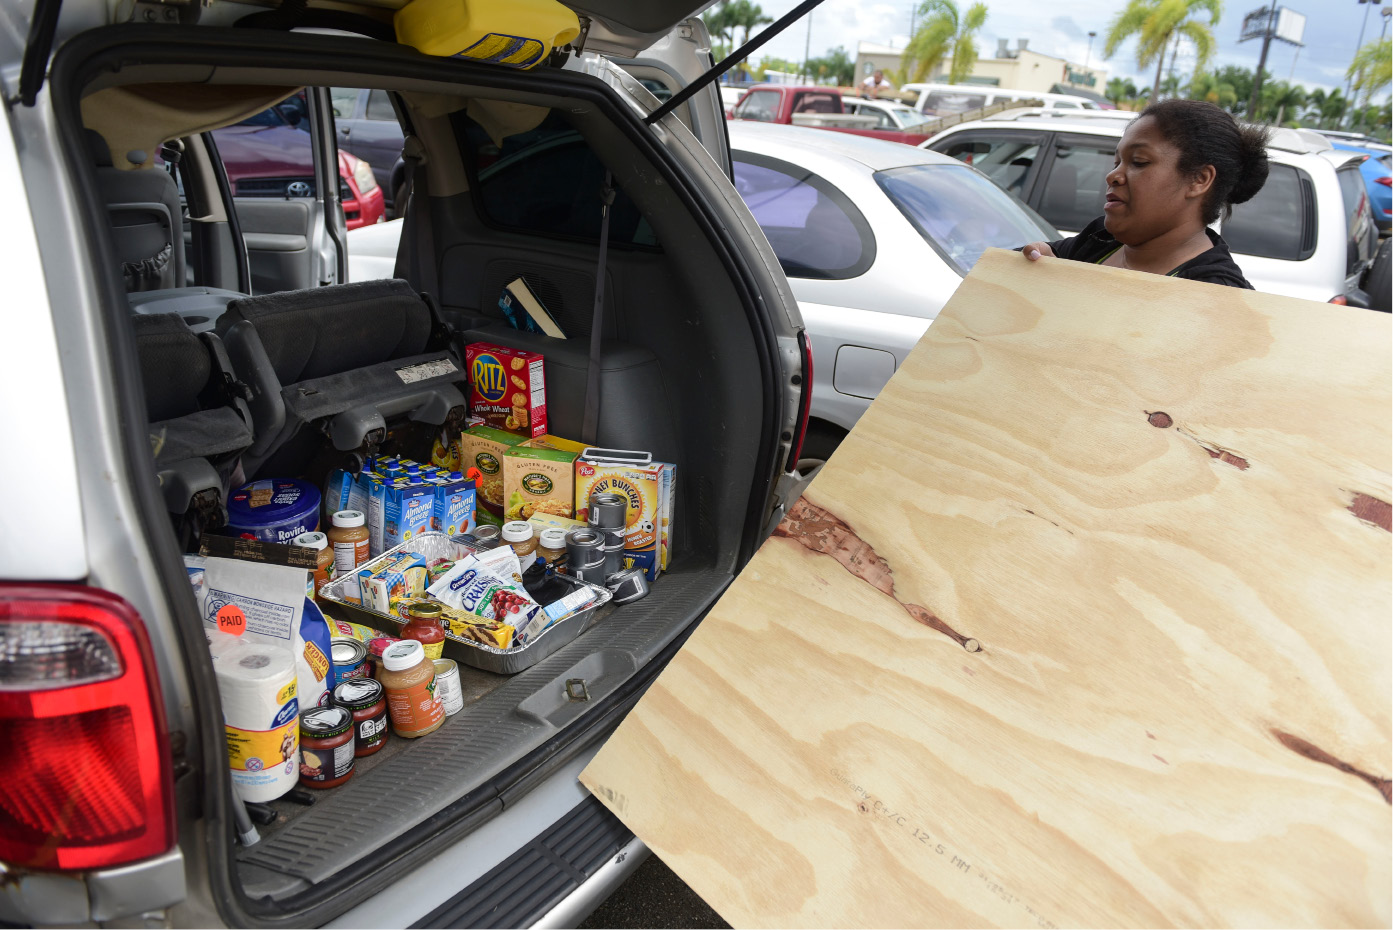 After loading the back of her vehicle with food Maria Minier loads a recently purchased wood panel to be used in preparation for Hurricane Irma, in Carolina, Puerto Rico, Tuesday, Sept. 5, 2017. Irma grew into a dangerous Category 5 storm, the most powerful seen in the Atlantic in over a decade, and roared toward islands in the northeast Caribbean Tuesday. (AP Photo/Carlos Giusti)